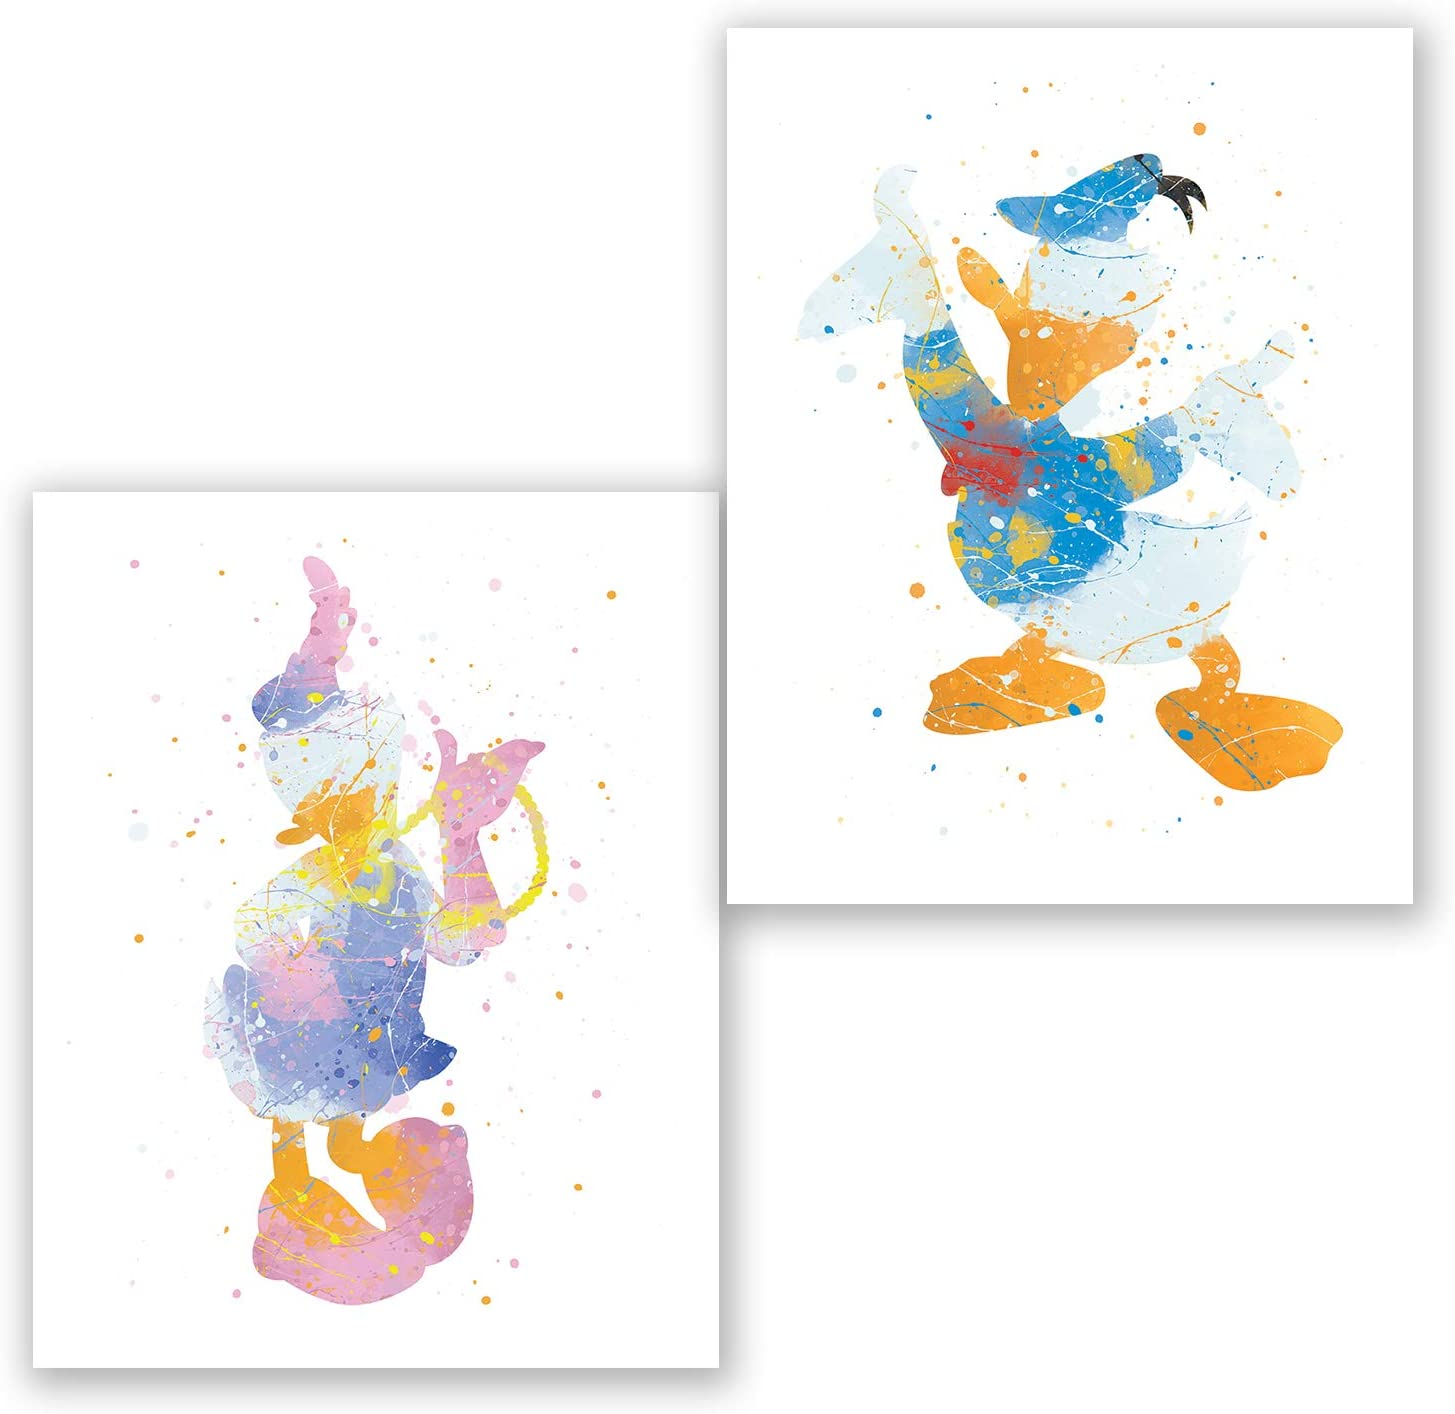 Daisy Duck Dictionary Art Print Poster Picture Walt Disney Mickey Mouse Donald